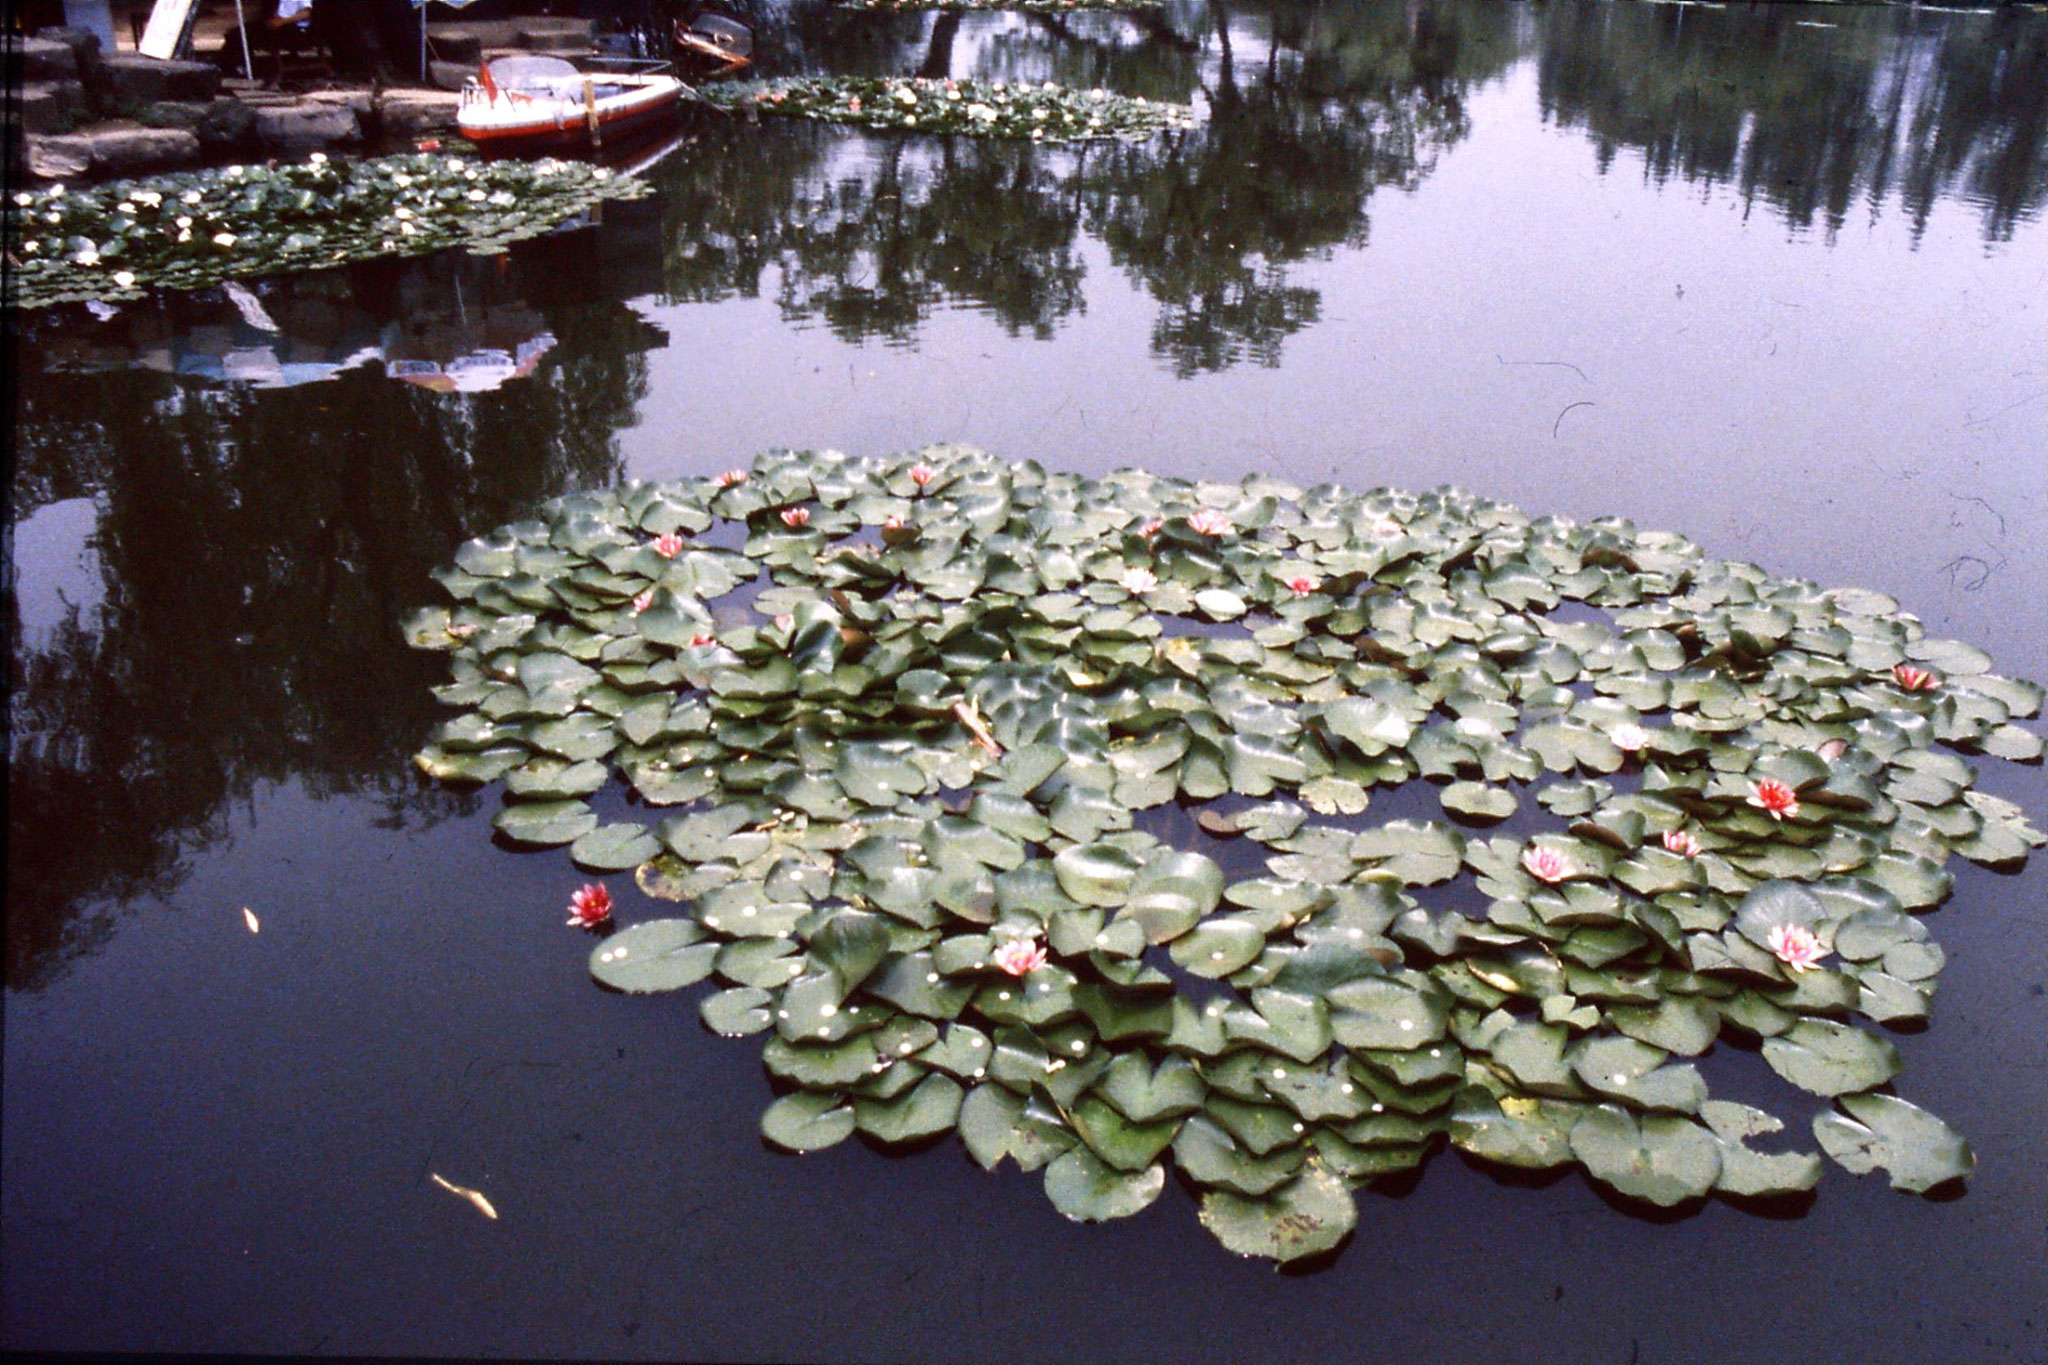 19/6/1989: 12: water lilies and coins on Xiao Ying Zhou Isle